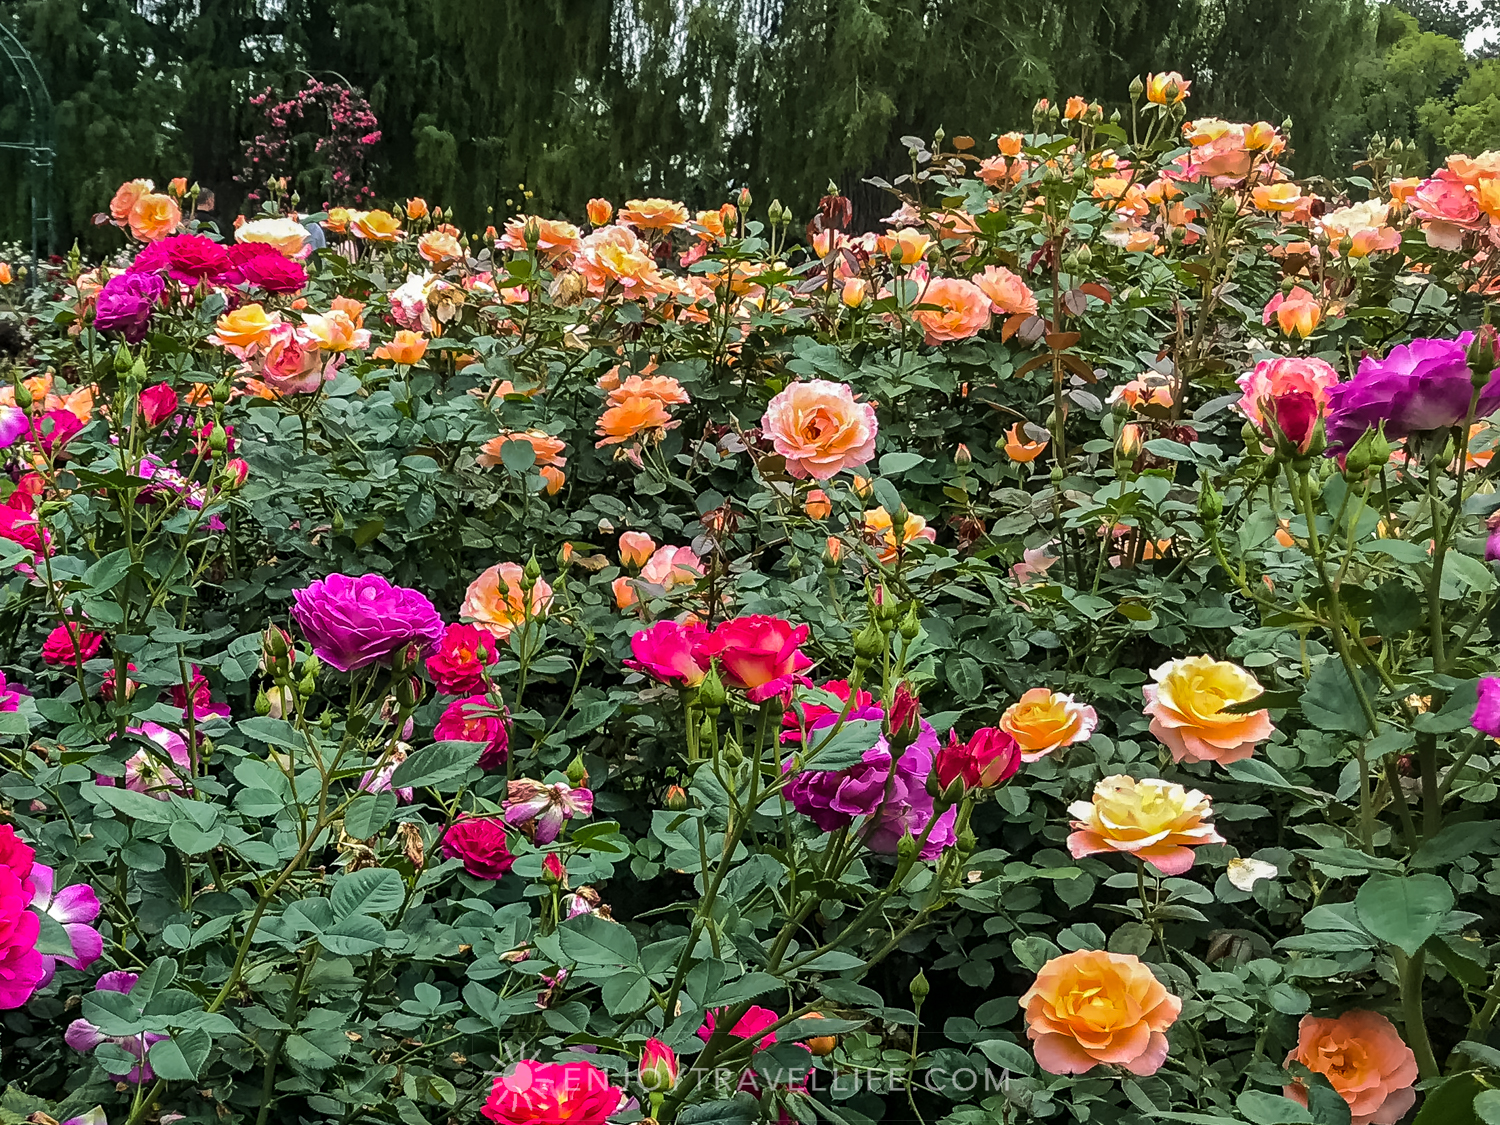 Spectacular Botanical Gardens - The Huntington Rose Garden